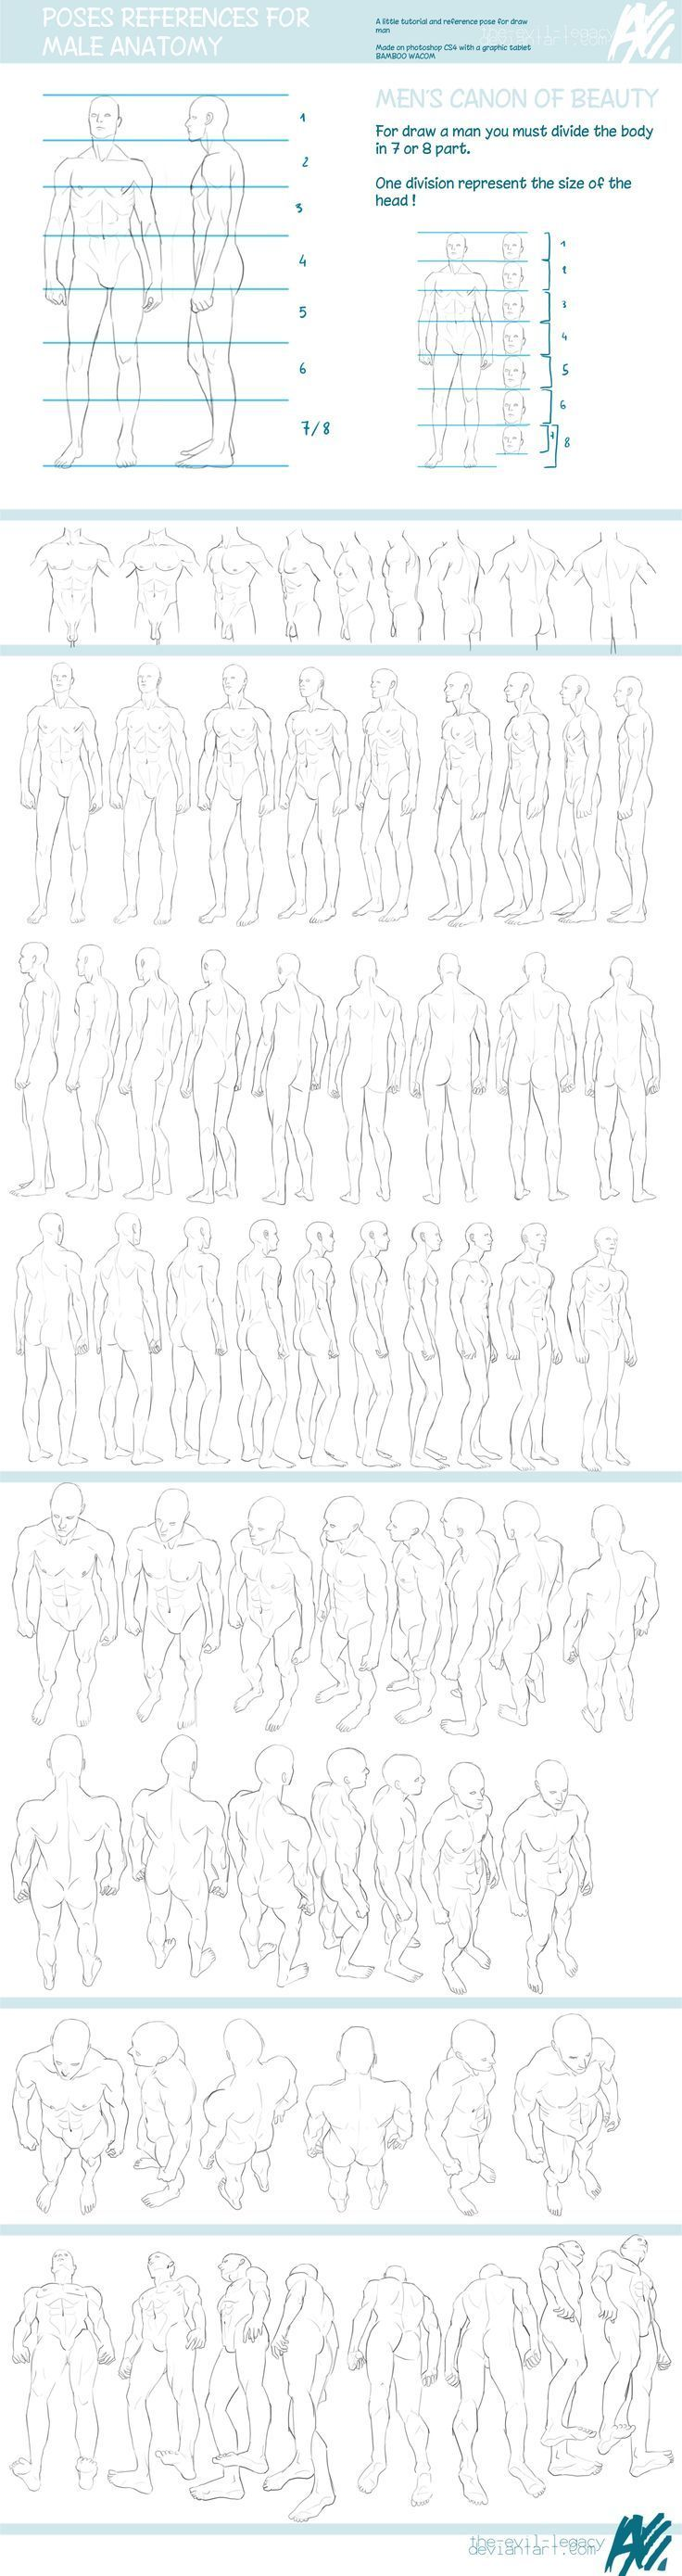 TUTO - male reference pose by ~the-evil-legacy on deviantART https ...